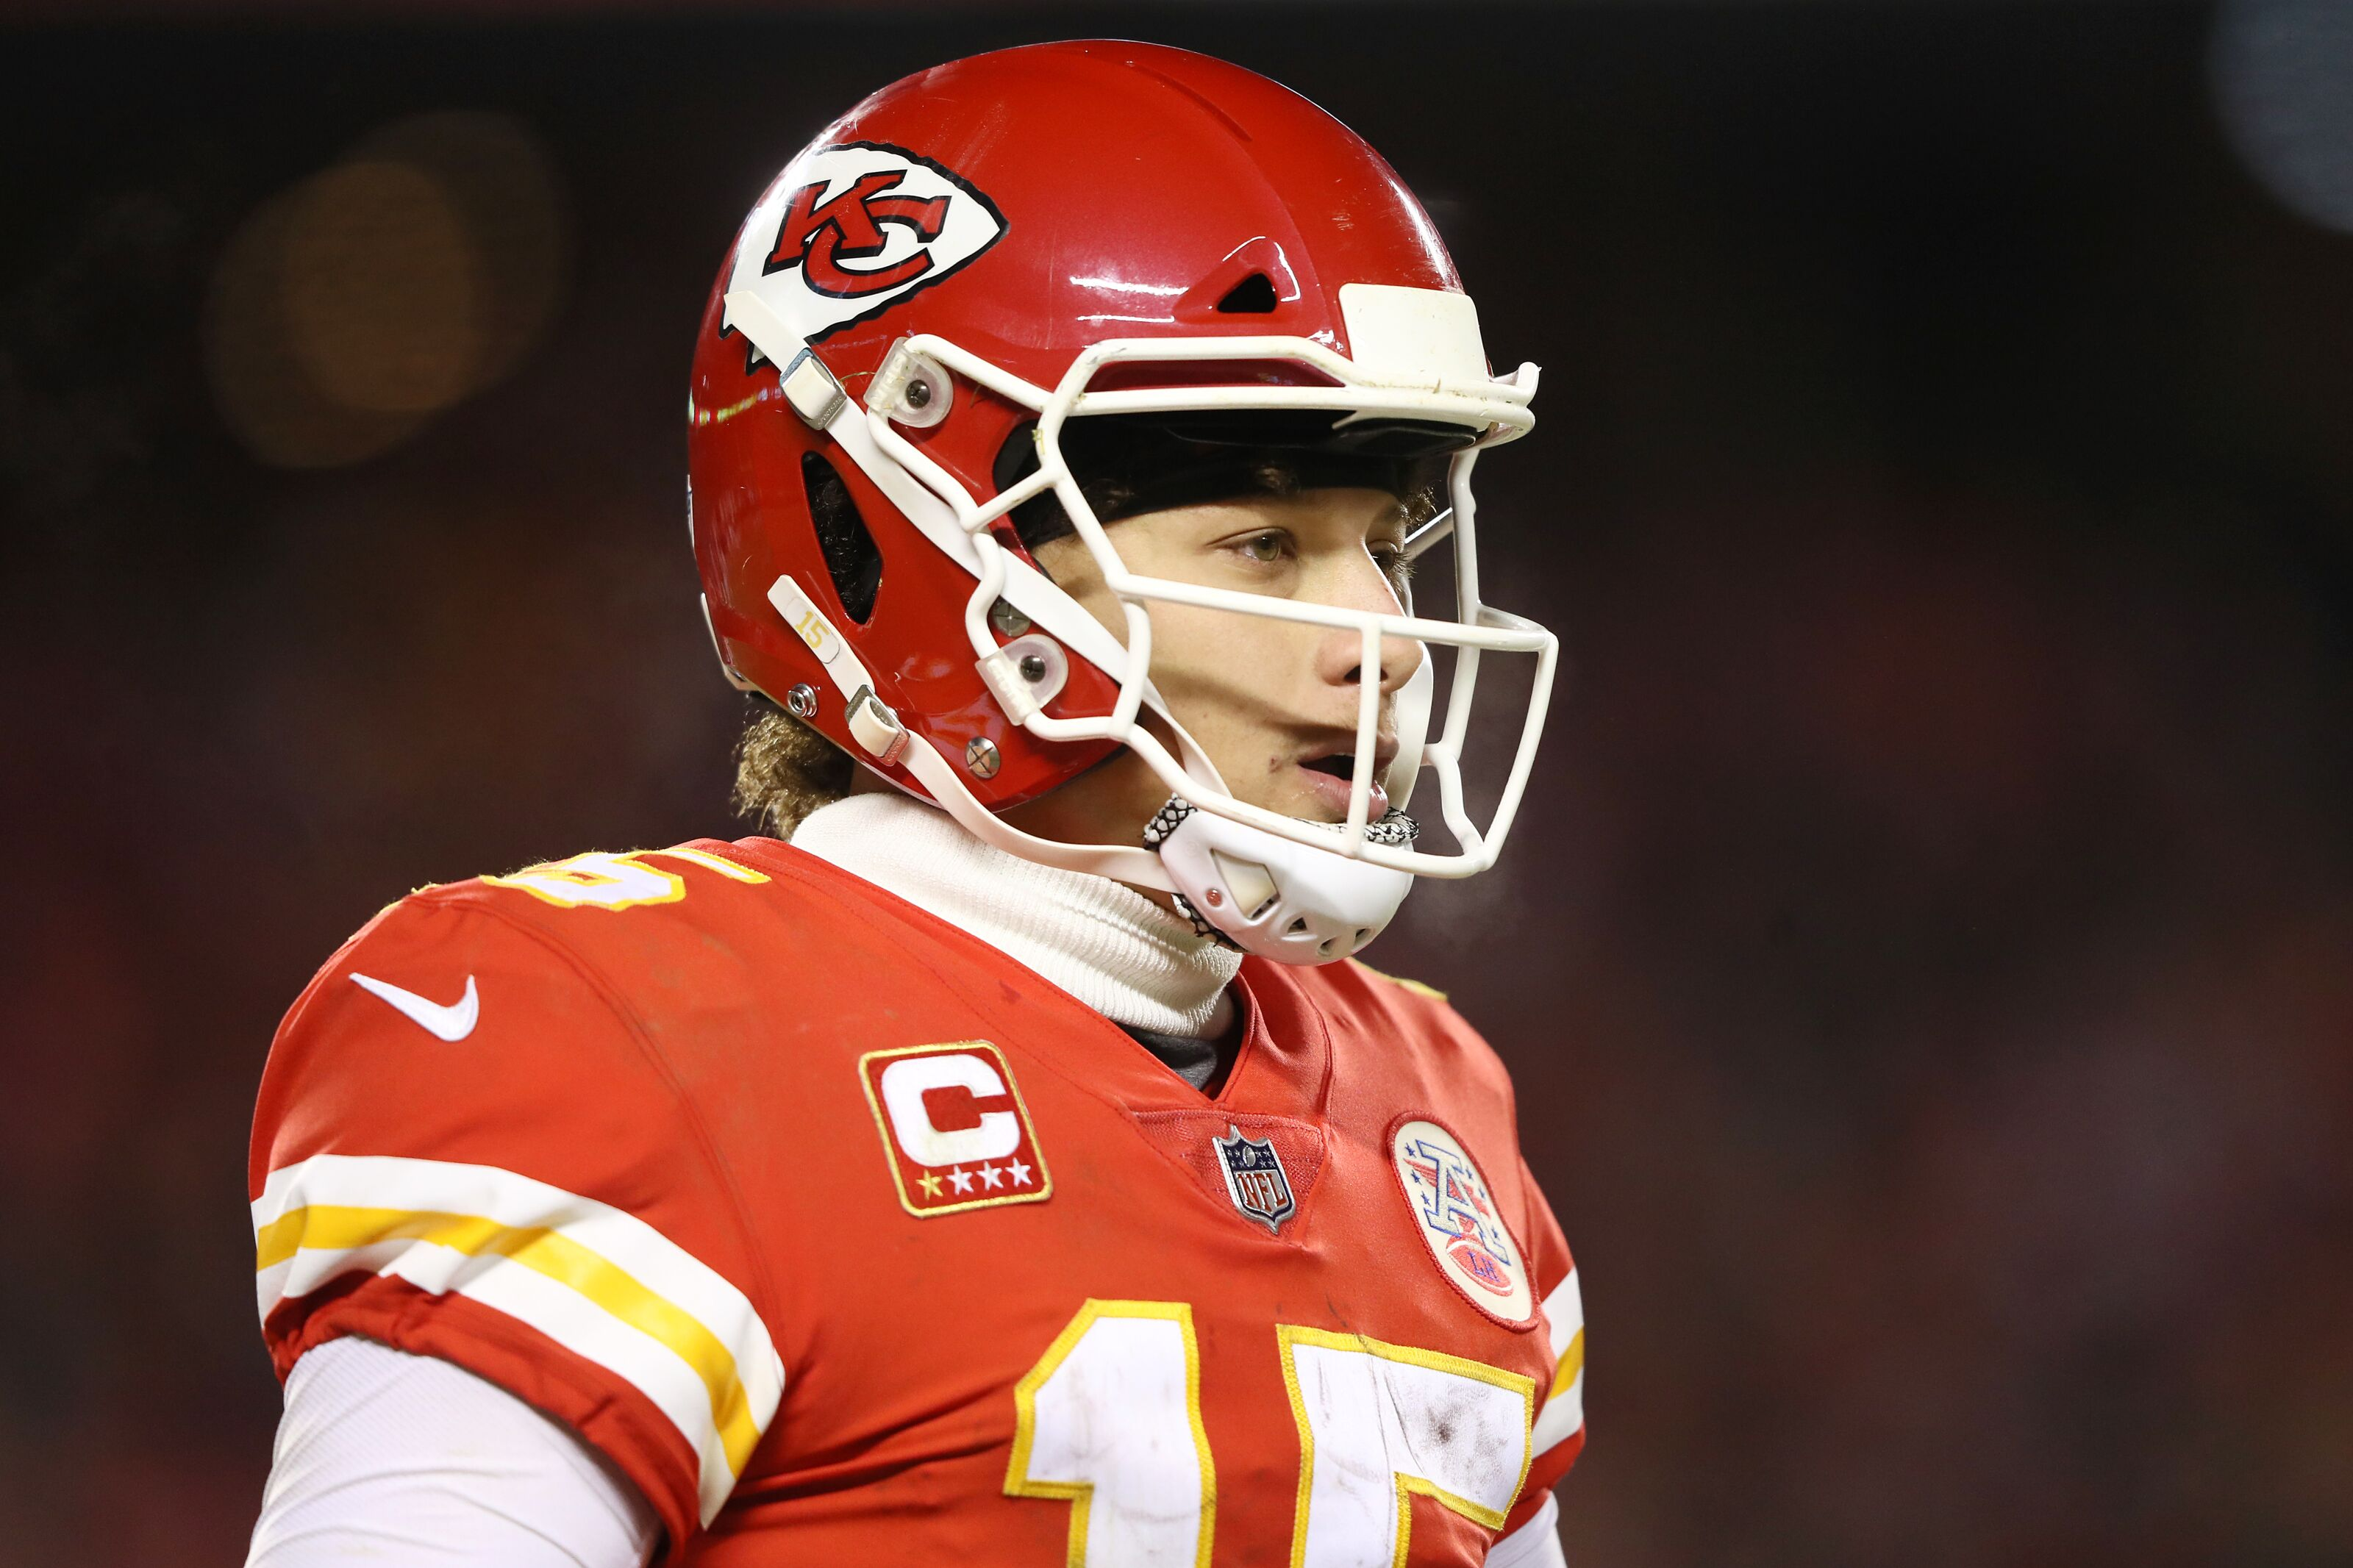 bb794c3d Kansas City Chiefs release full preseason schedule